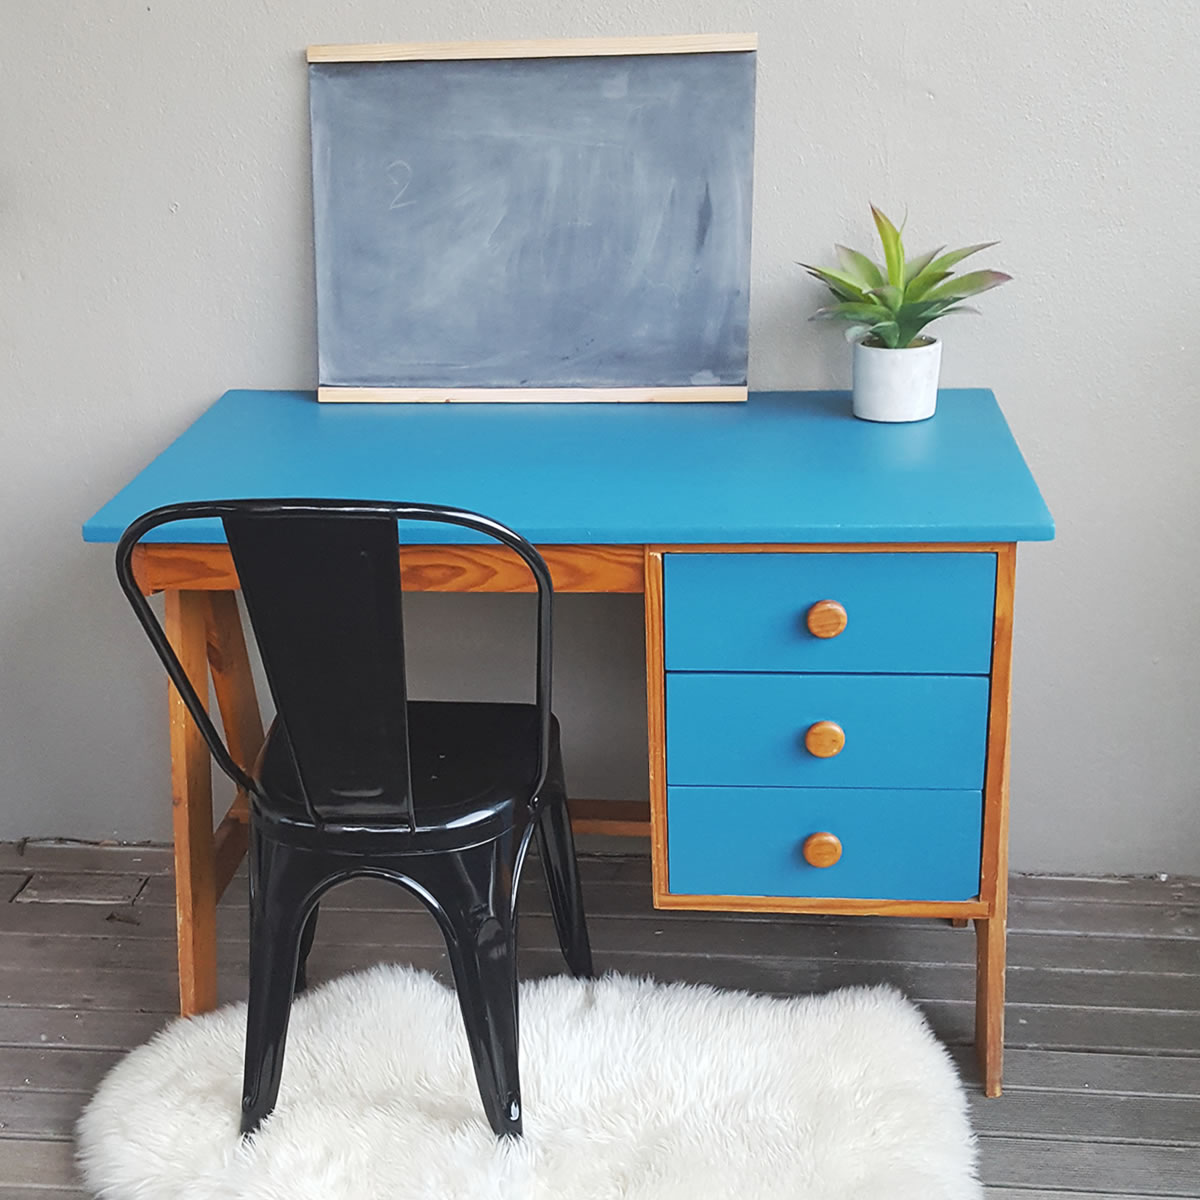 kids desk furniture. oak vintage desk kids furniture - Kids Desk Furniture Oak Vintage Desk Kids Furniture - Systym.co